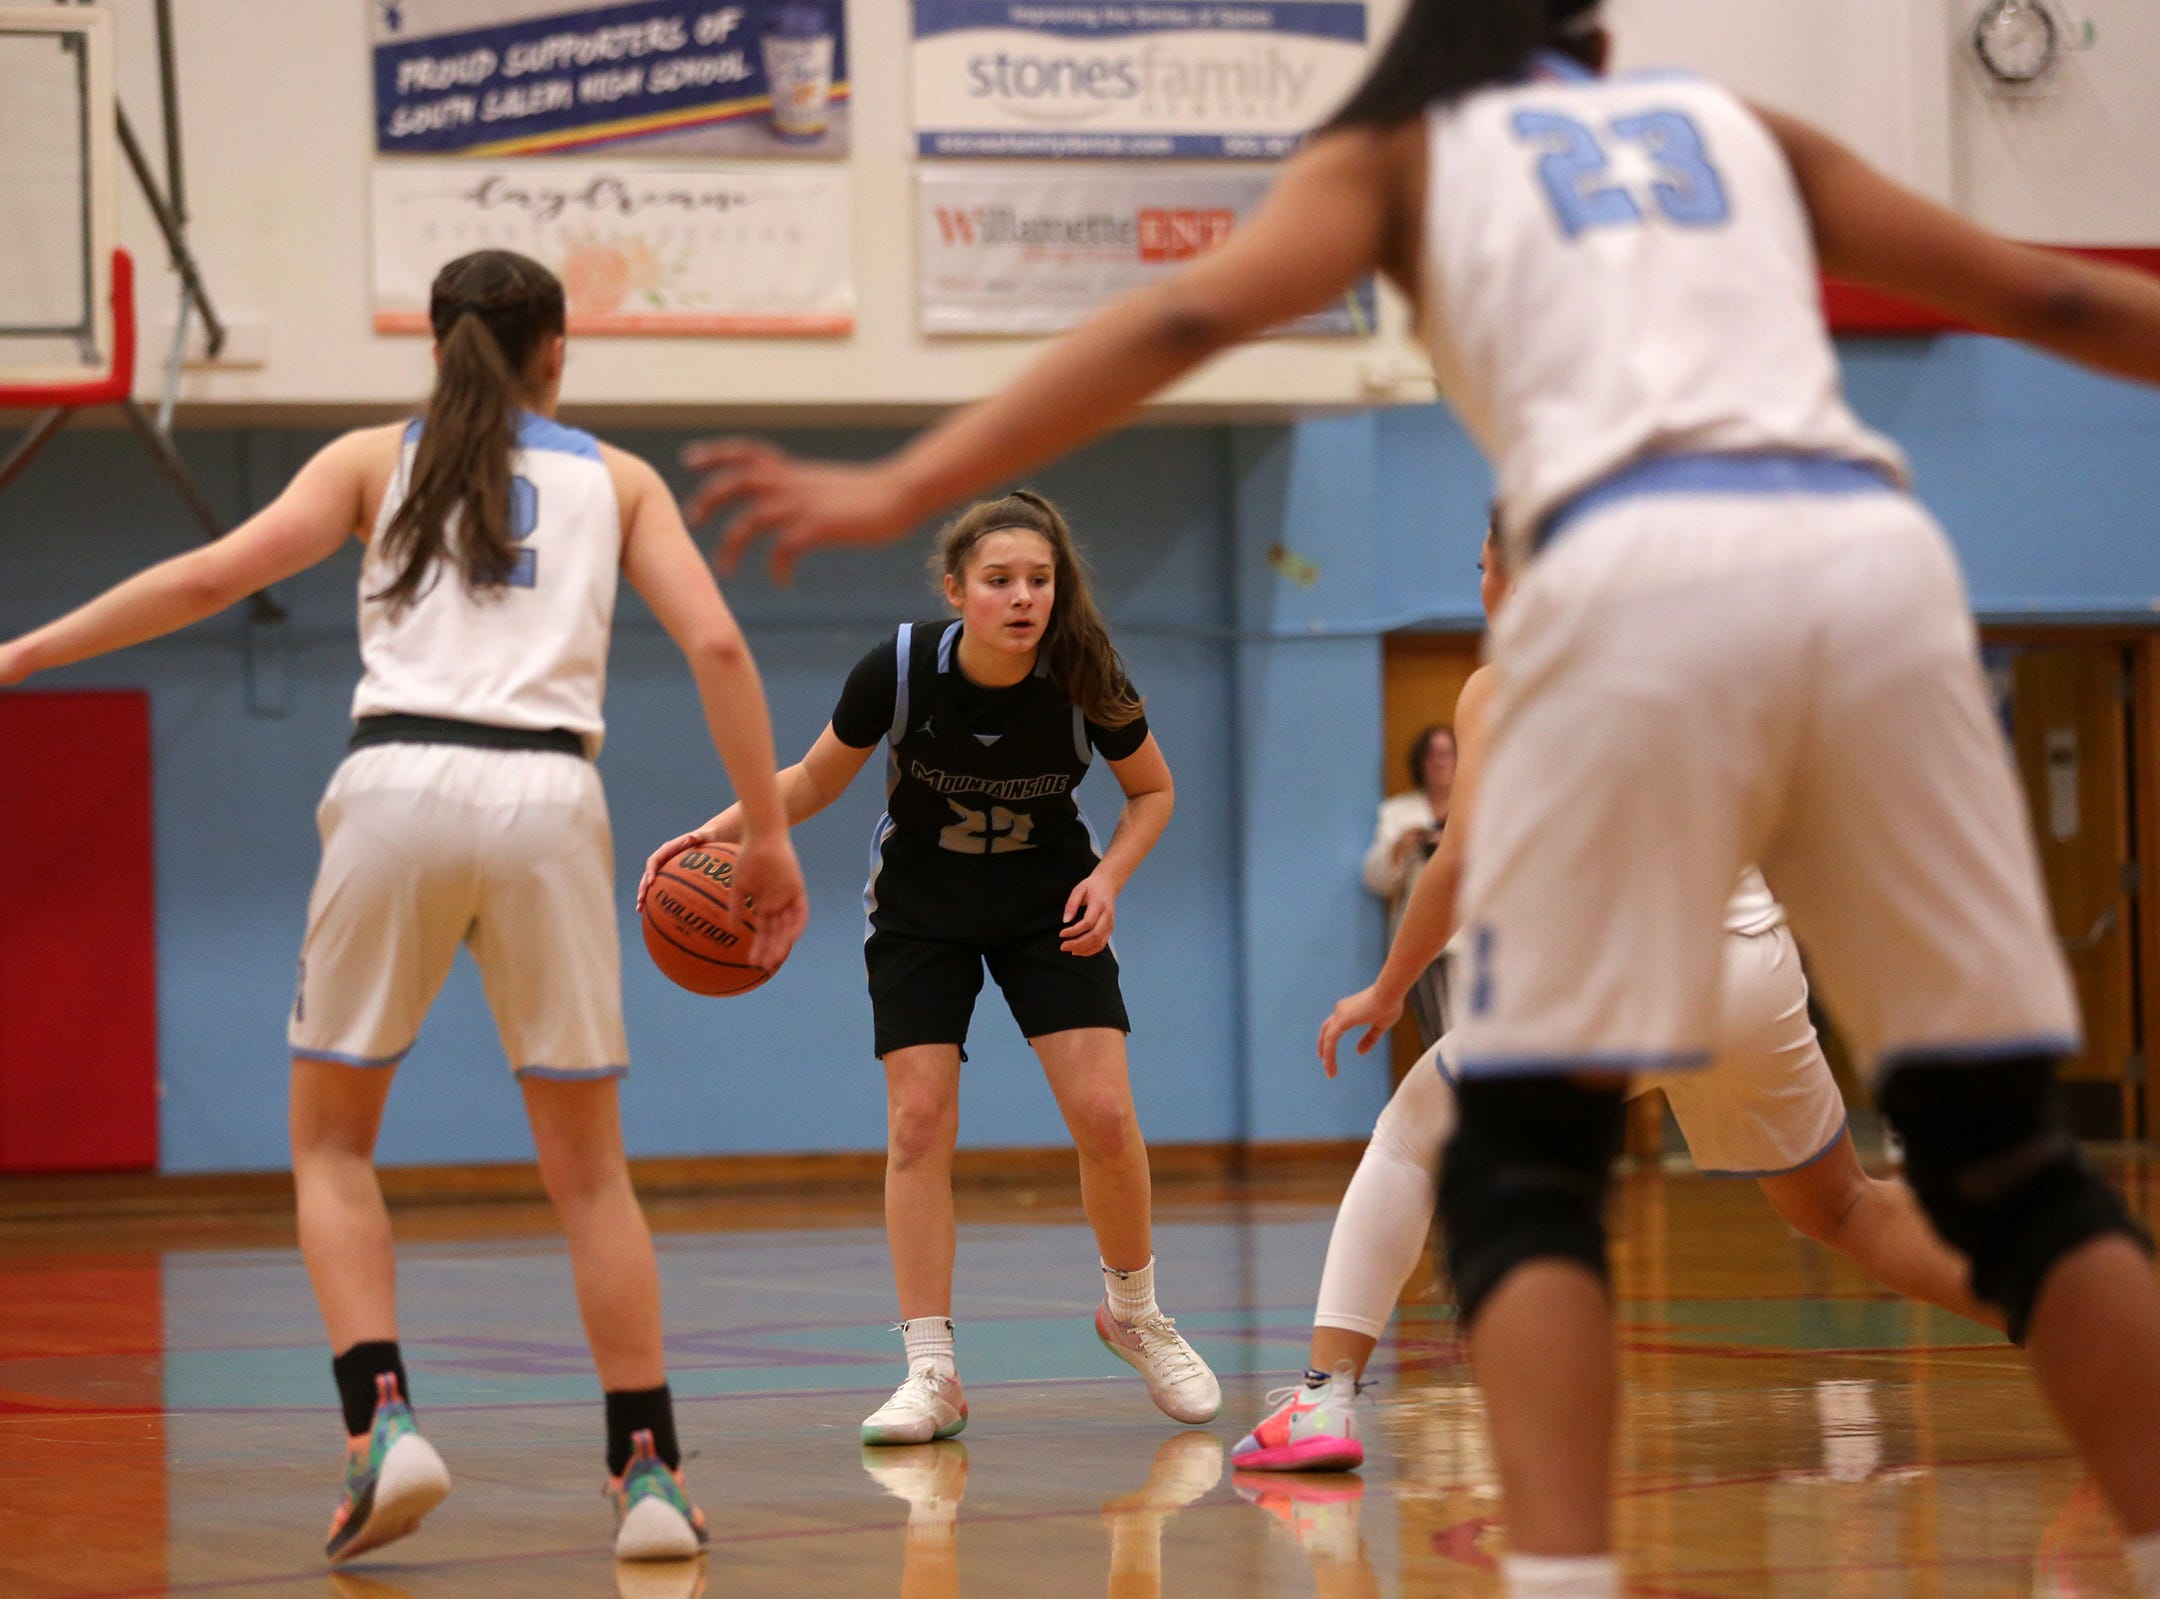 Mountainside's Halle Hageman (22) looks to make a pass during the South Salem vs. Mountainside girls basketball OSAA playoff game in Salem on Thursday, Feb. 28, 2019.